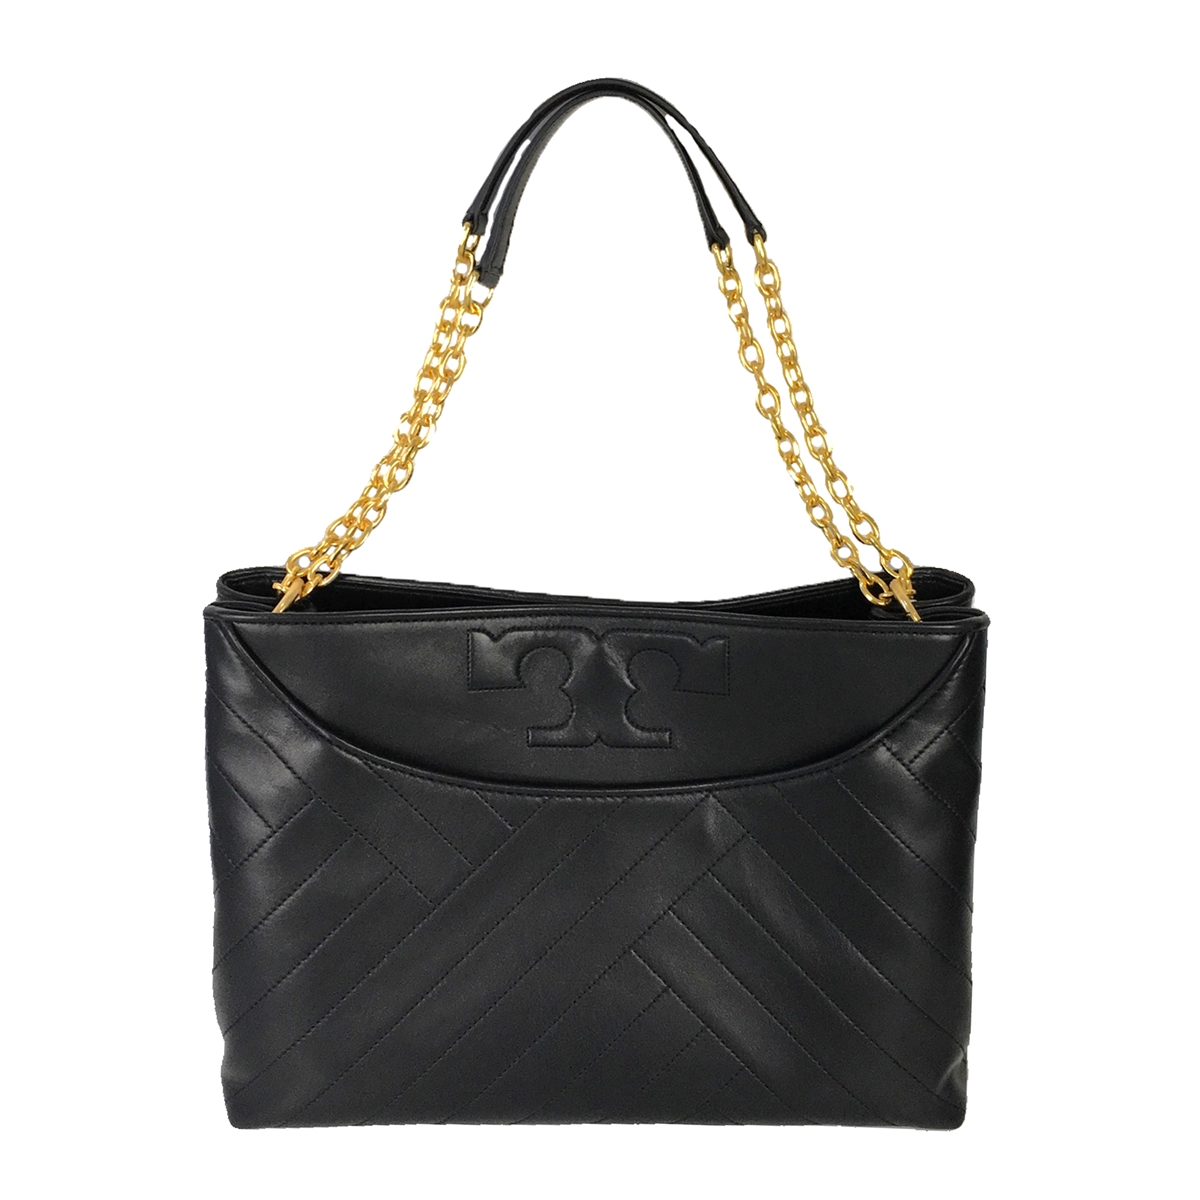 685141932d Tory Burch Alexa Leather Center Zip Slouchy Tote, Black